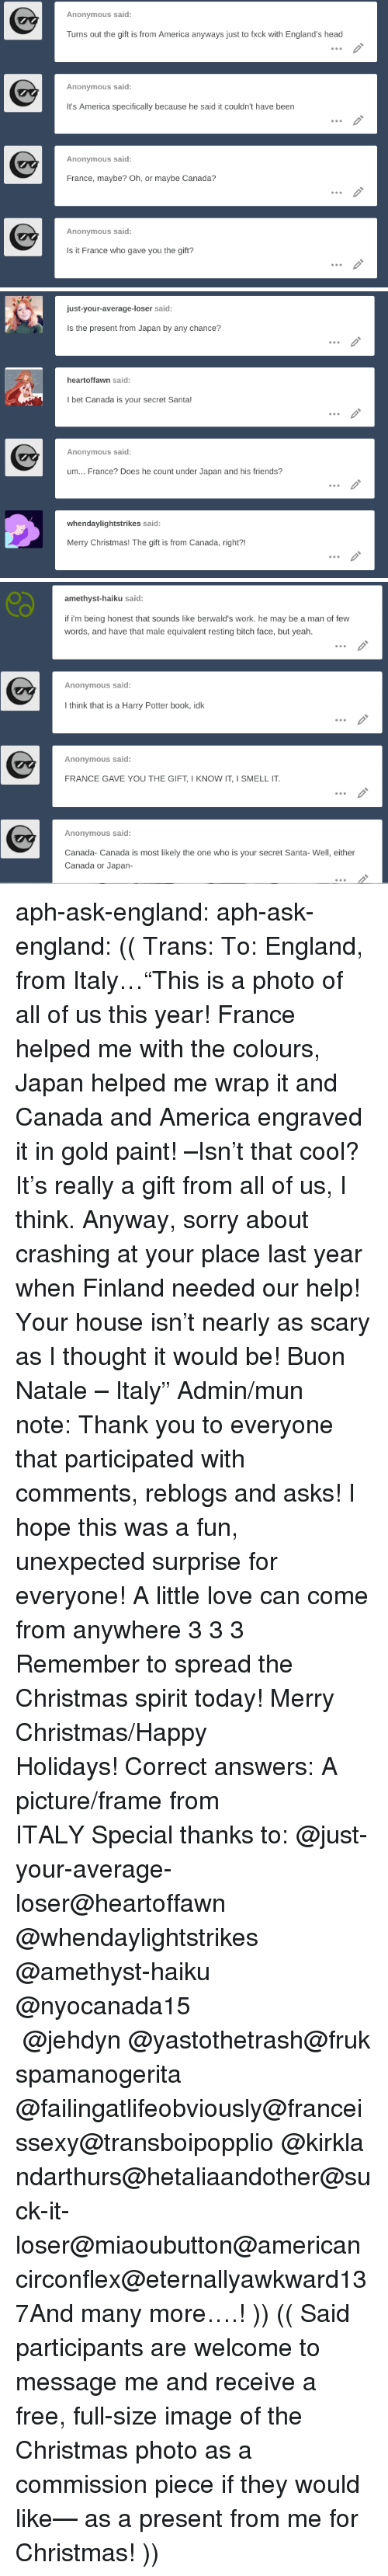 """Haiku: Anonymous said:  Turns out the gift is from America anyways just to fxck with England's head  Anonymous said:  It's America specifically because he said it couldn't have been  Anonymous said:  France, maybe? Oh, or maybe Canada?  Anonymous said:  Is it France who gave you the gift?   just-your-average-loser said:  Is the present from Japan by any chance?  heartoffawn said:  I bet Canada is your secret Santa!  Anonymous said:  um... France? Does he count under Japan and his friends?  whendaylightstrikes said  Merry Christmas! The gift is from Canada, right?!   amethyst-haiku said:  if i'm being honest that sounds like berwald's work. he may be a man of few  words, and have that male equivalent resting bitch face, but yeah.  Anonymous said  I think that is a Harry Potter book, idk  Anonymous said:  FRANCE GAVE YOU THE GIFT, I KNOW IT, I SMELL IT  Anonymous said:  Canada- Canada is most likely the one who is your secret Santa- Well, either  Canada or Japan- aph-ask-england:  aph-ask-england: (( Trans:To: England, from Italy…""""This is a photo of all of us this year! France helped me with the colours, Japan helped me wrap it and Canada and America engraved it in gold paint! –Isn't that cool? It's really a gift from all of us, I think. Anyway, sorry about crashing at your place last year when Finland needed our help! Your house isn't nearly as scary as I thought it would be!Buon Natale – Italy""""Admin/mun note:Thank you to everyone that participated with comments, reblogs and asks! I hope this was a fun, unexpected surprise for everyone! A little love can come from anywhere 3 3 3 Remember to spread the Christmas spirit today! Merry Christmas/Happy Holidays!Correct answers: A picture/frame from ITALYSpecial thanks to:@just-your-average-loser@heartoffawn @whendaylightstrikes @amethyst-haiku @nyocanada15 @jehdyn@yastothetrash@frukspamanogerita @failingatlifeobviously@franceissexy@transboipopplio@kirklandarthurs@hetaliaandother@suck-it-loser@miaoubutton@americancirconflex"""